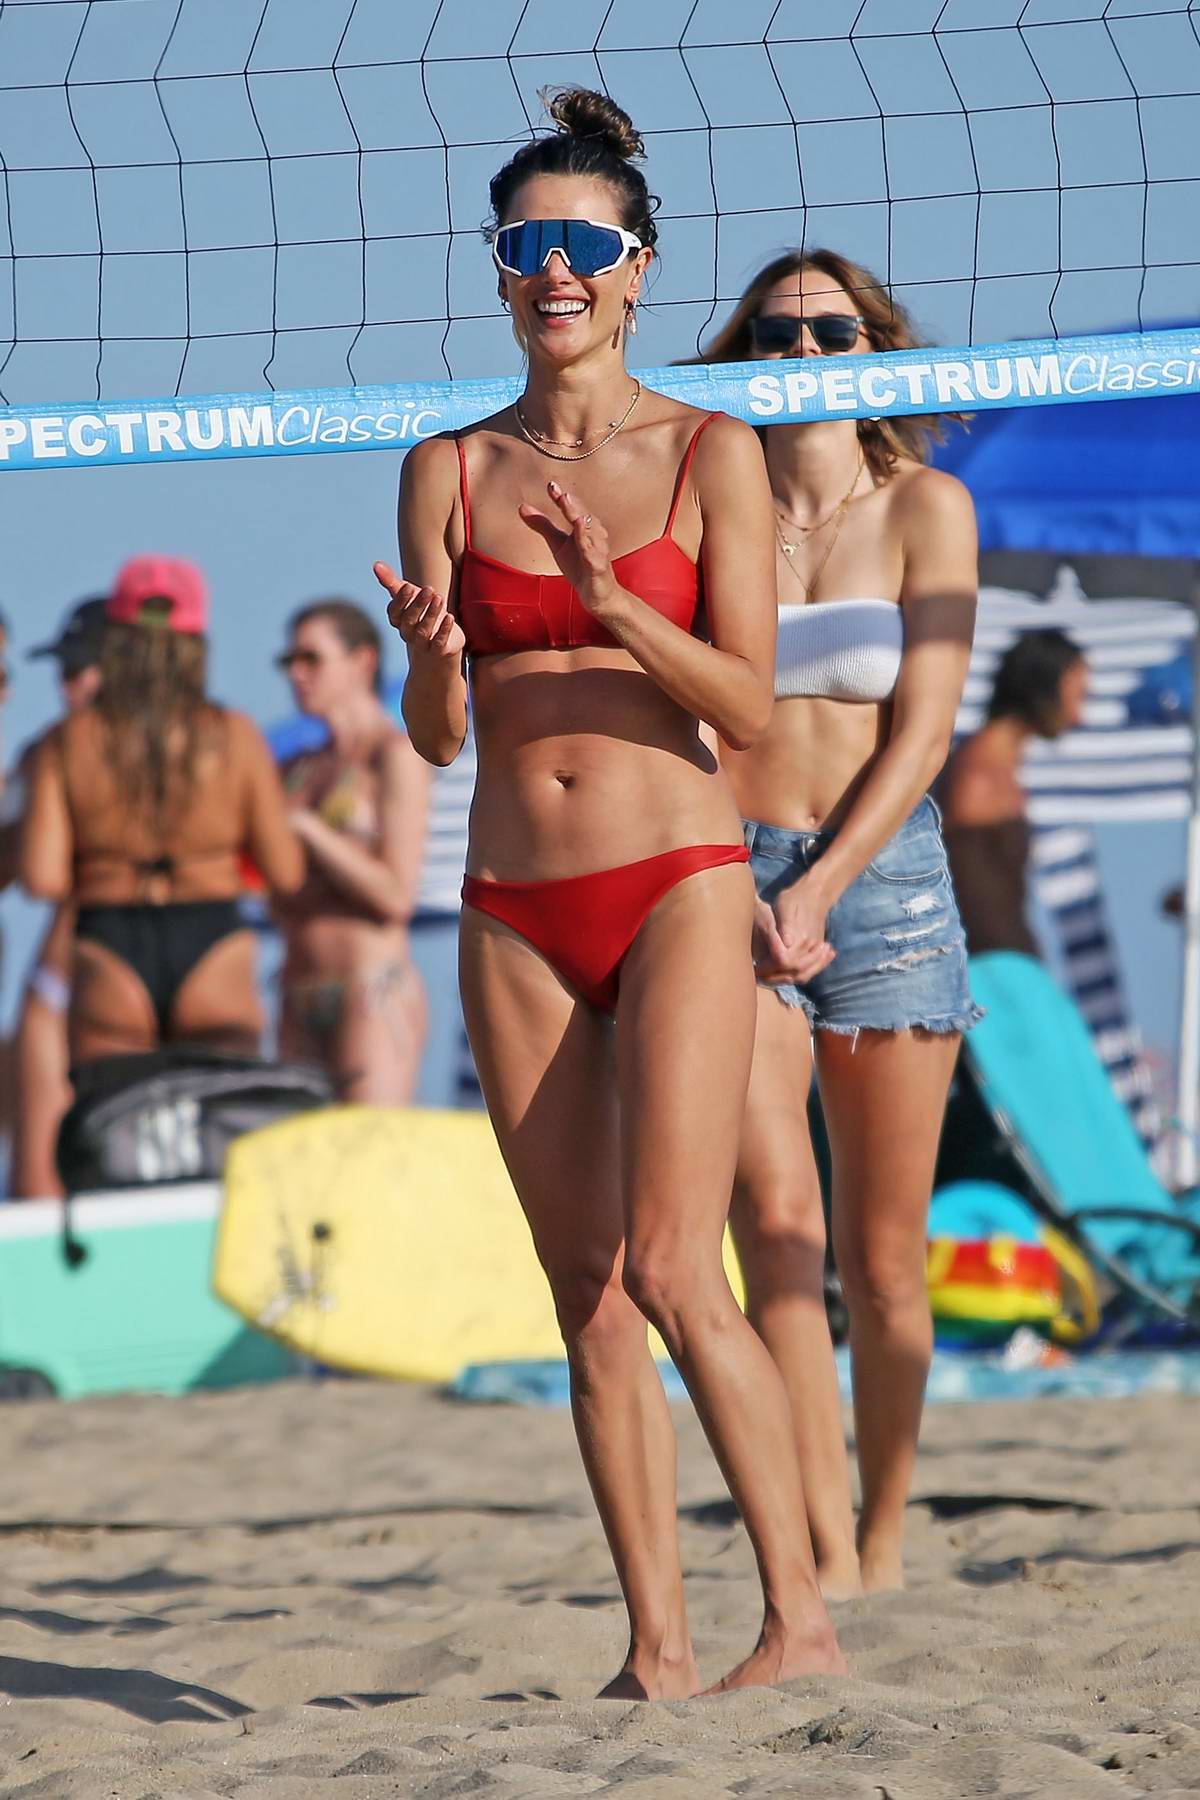 Alessandra Ambrosio looks incredible in a red bikini while playing some beach volleyball with friends in Malibu, California